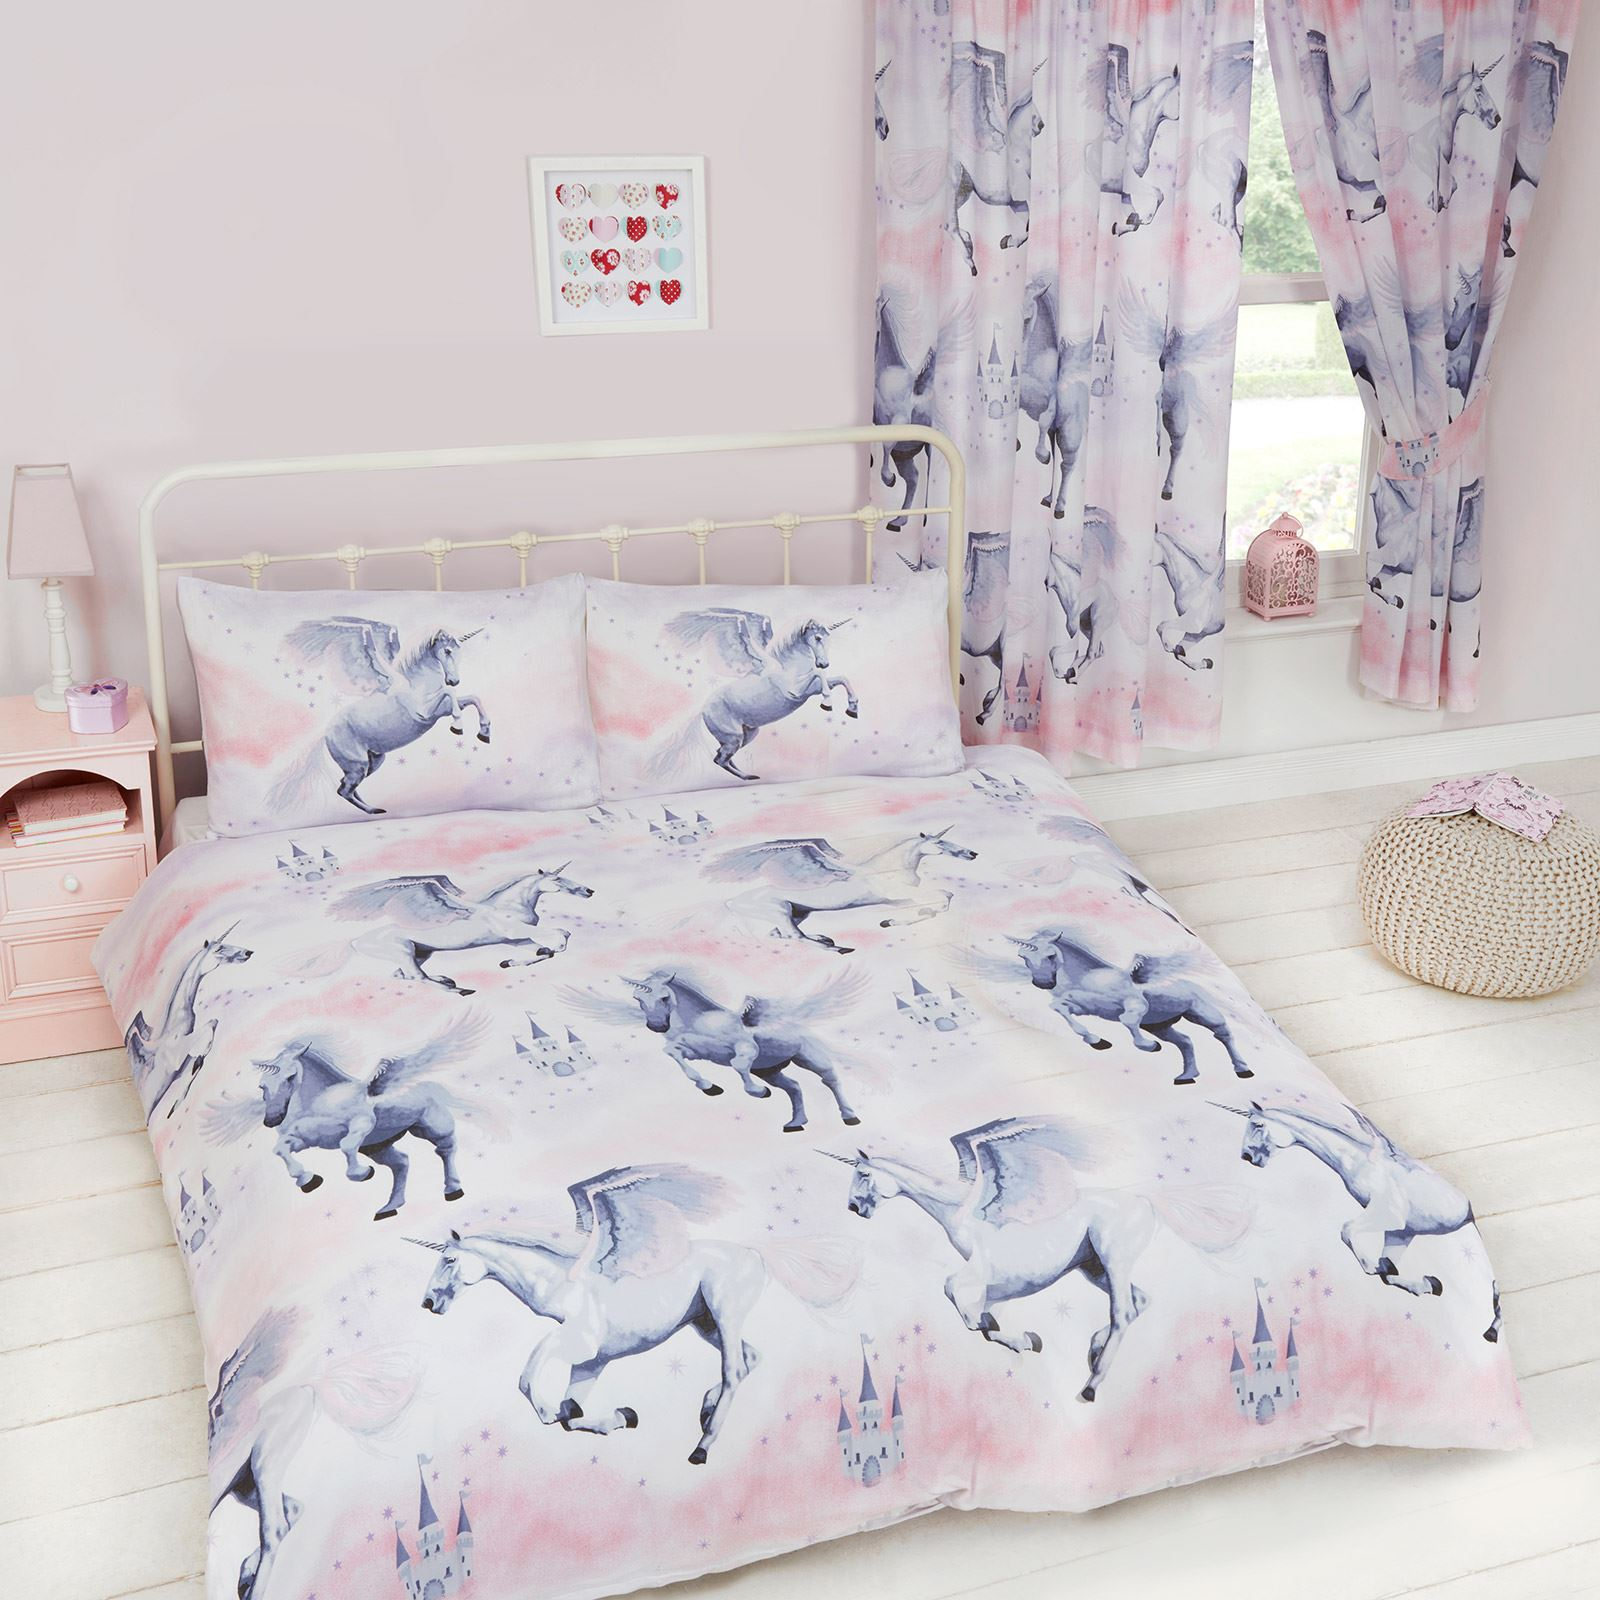 Stardust Unicorn Duvet Cover Sets Amp Matching Curtains